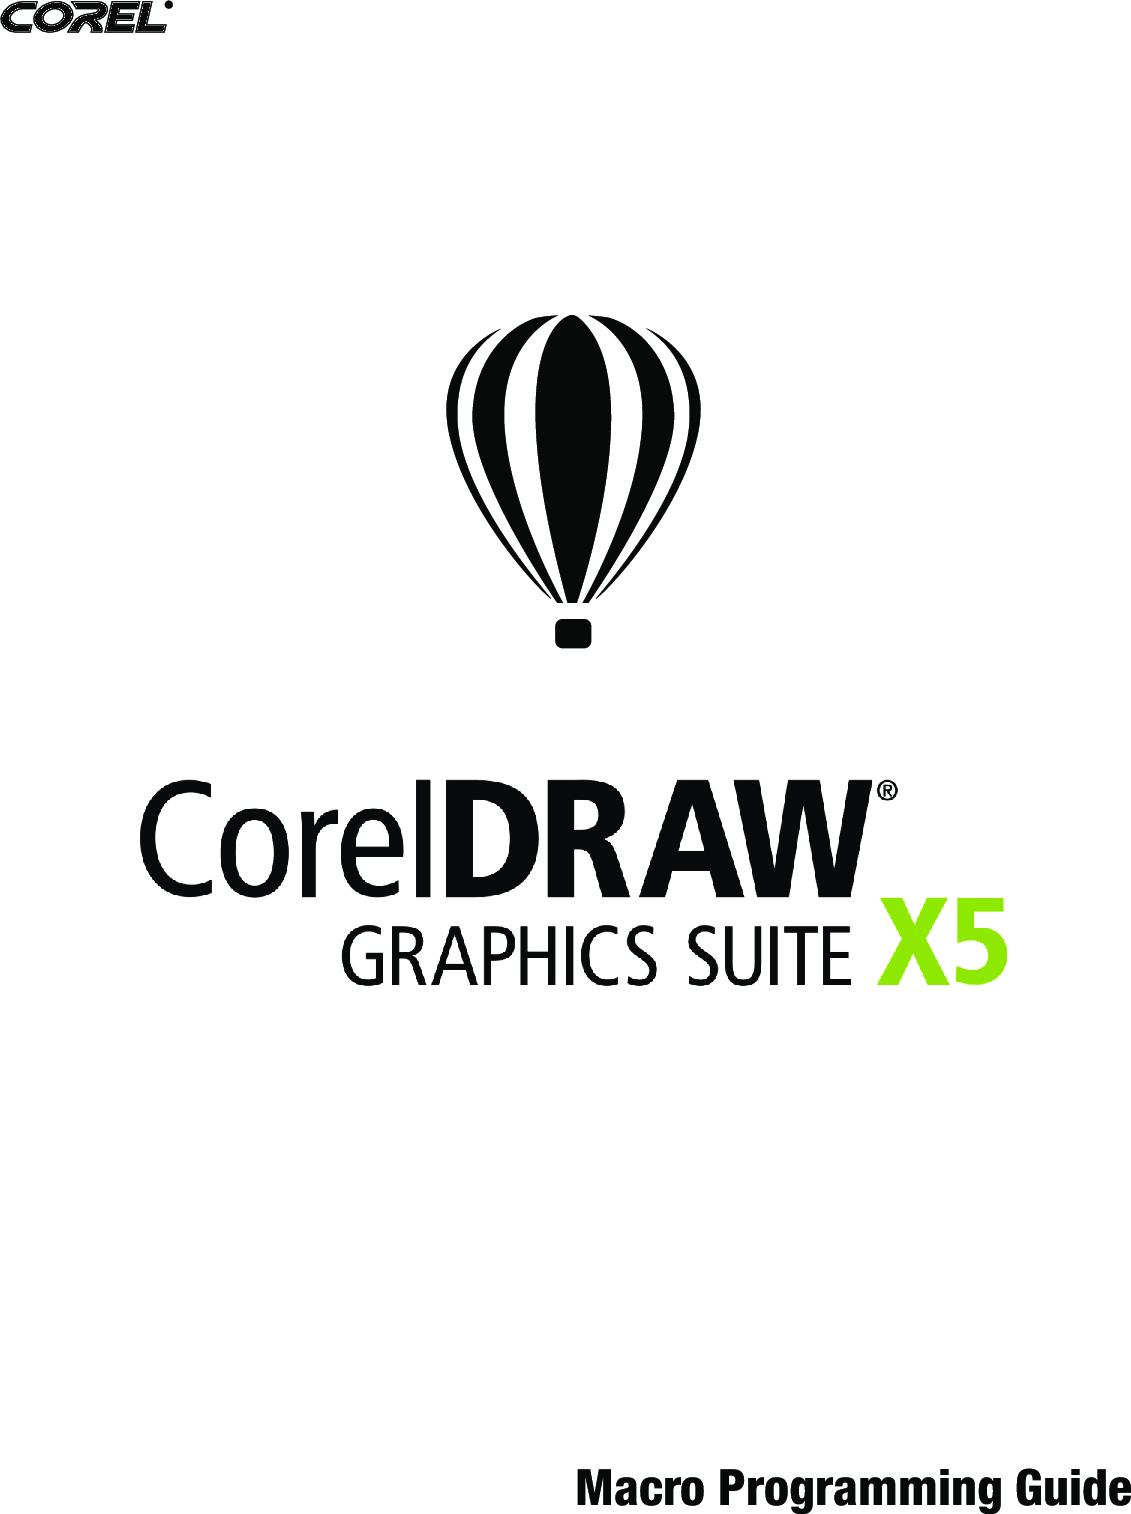 Corel CorelDRAW® Graphics Suite X5 Macro Programming Guide